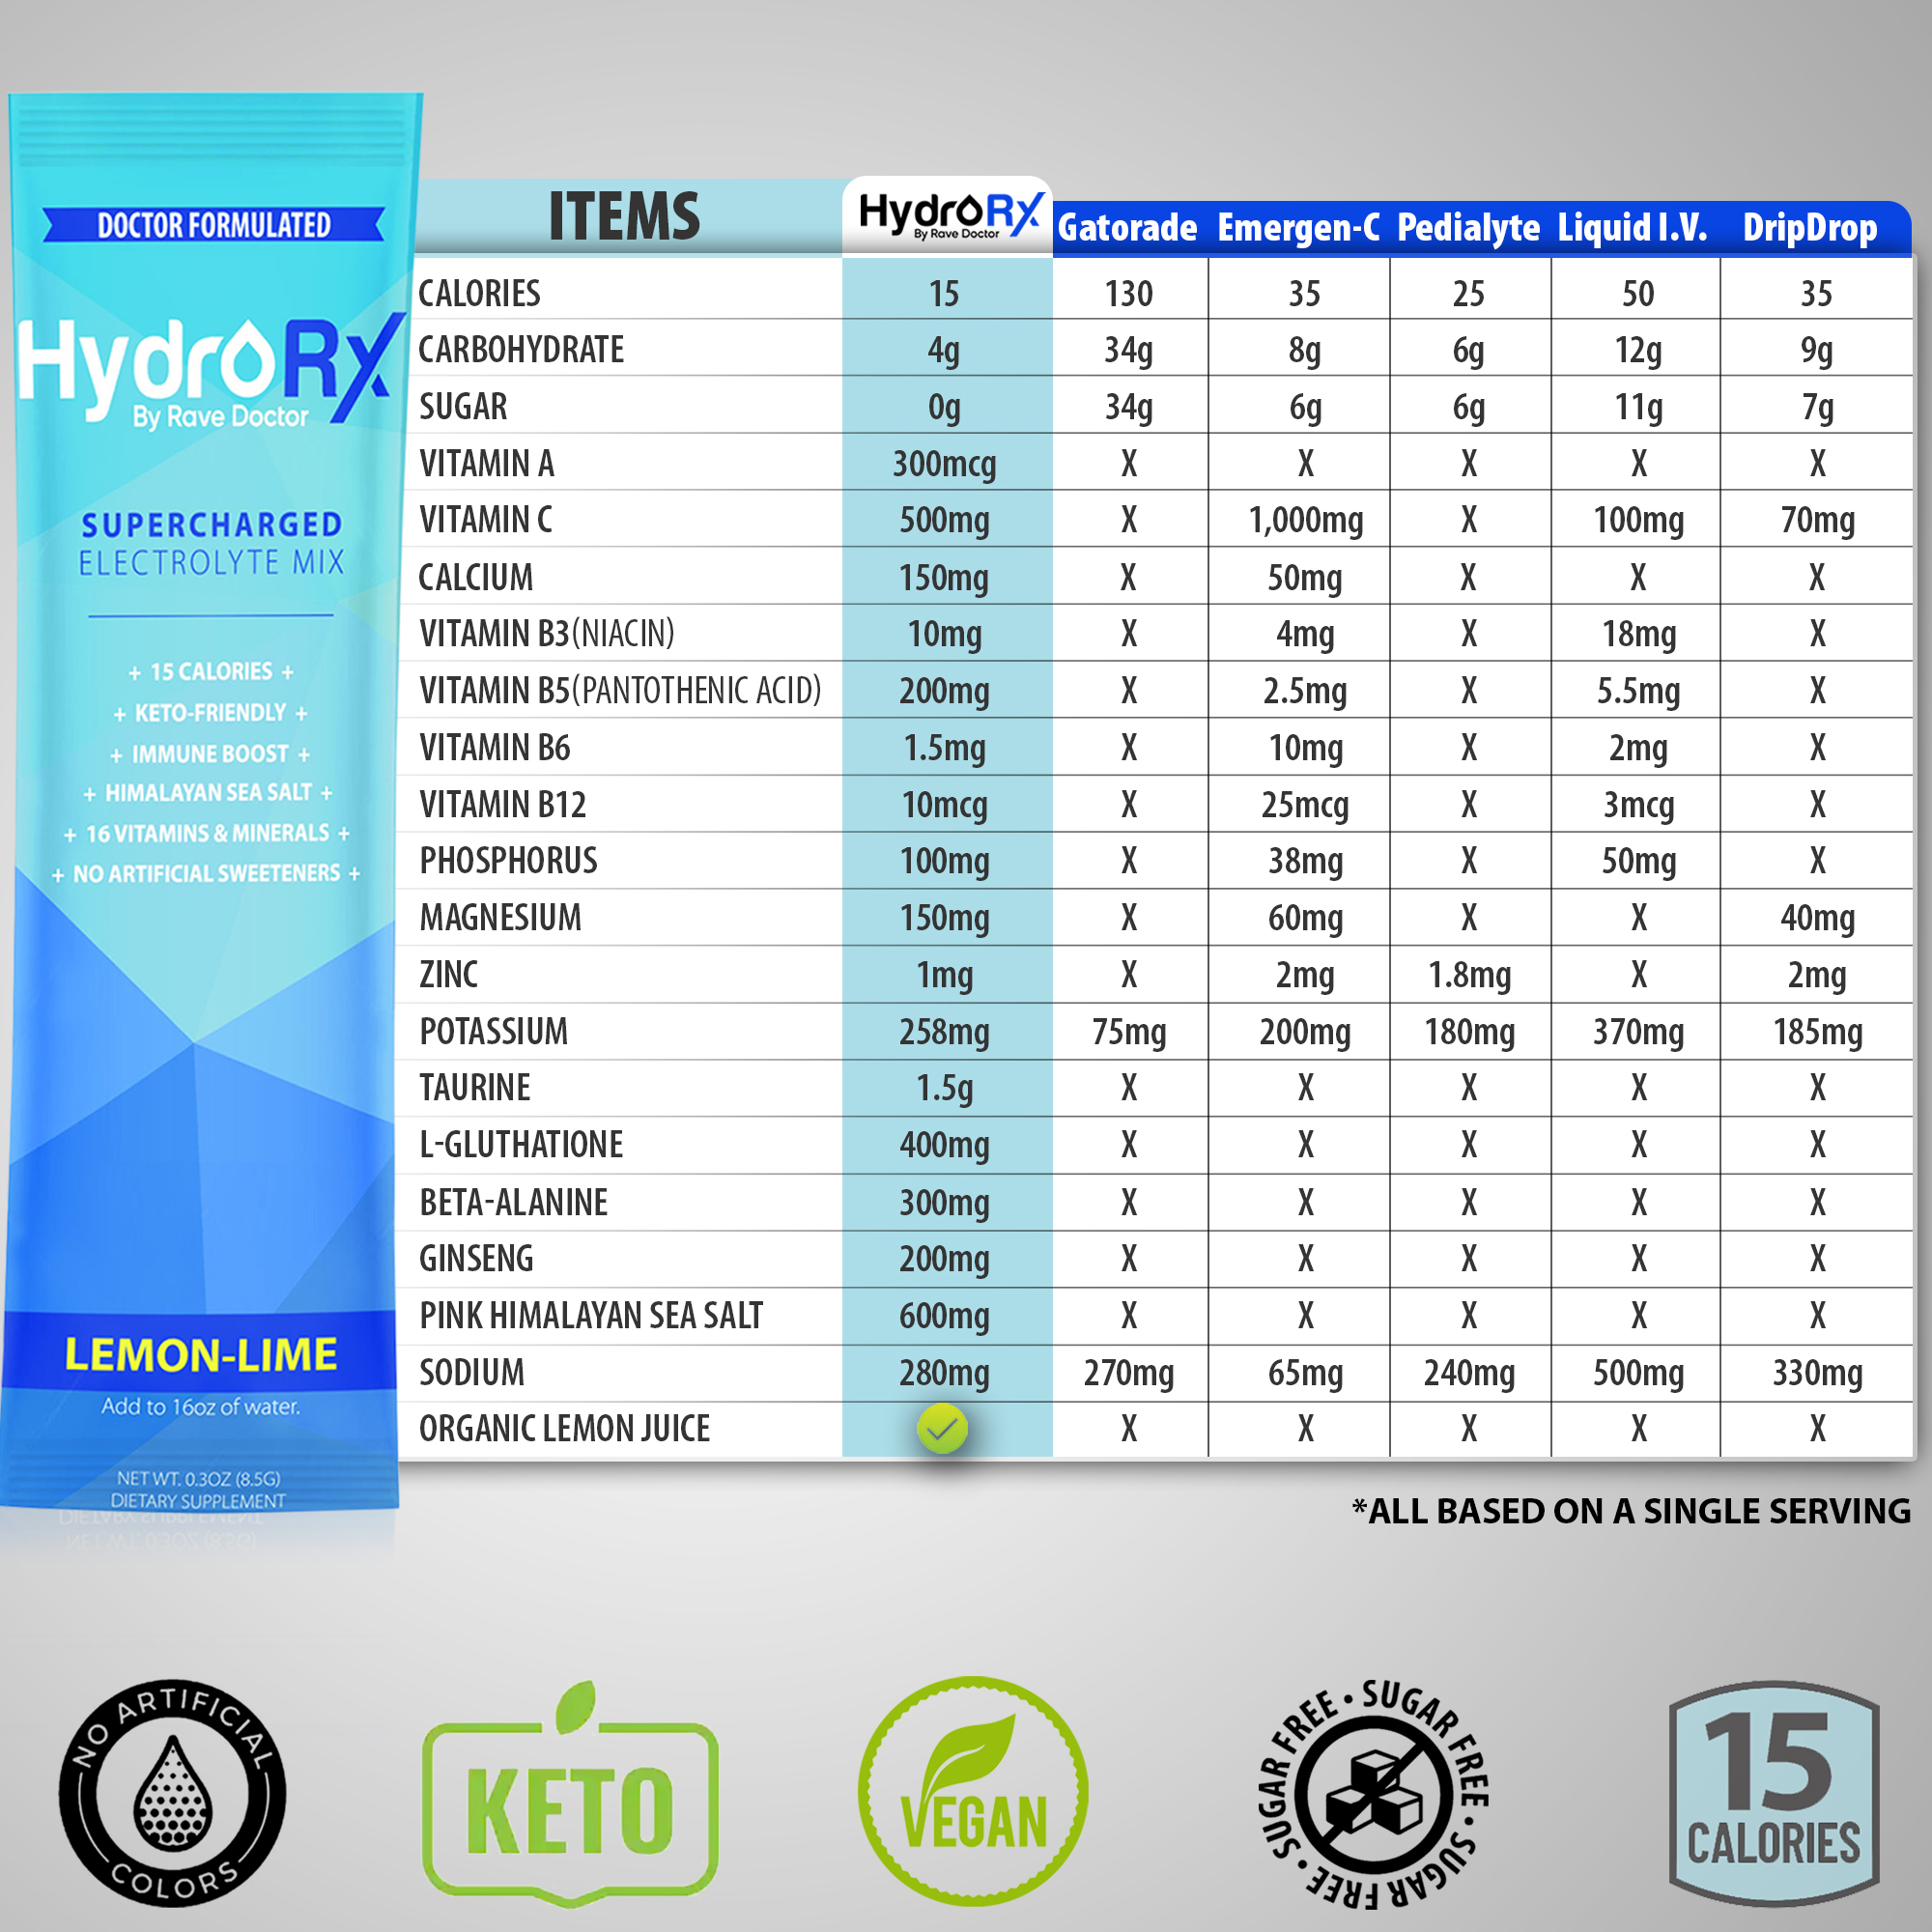 4.1 HydroRX by Rave Doctor compared to Gatorade, Emergen-C, and Pedialyte copy